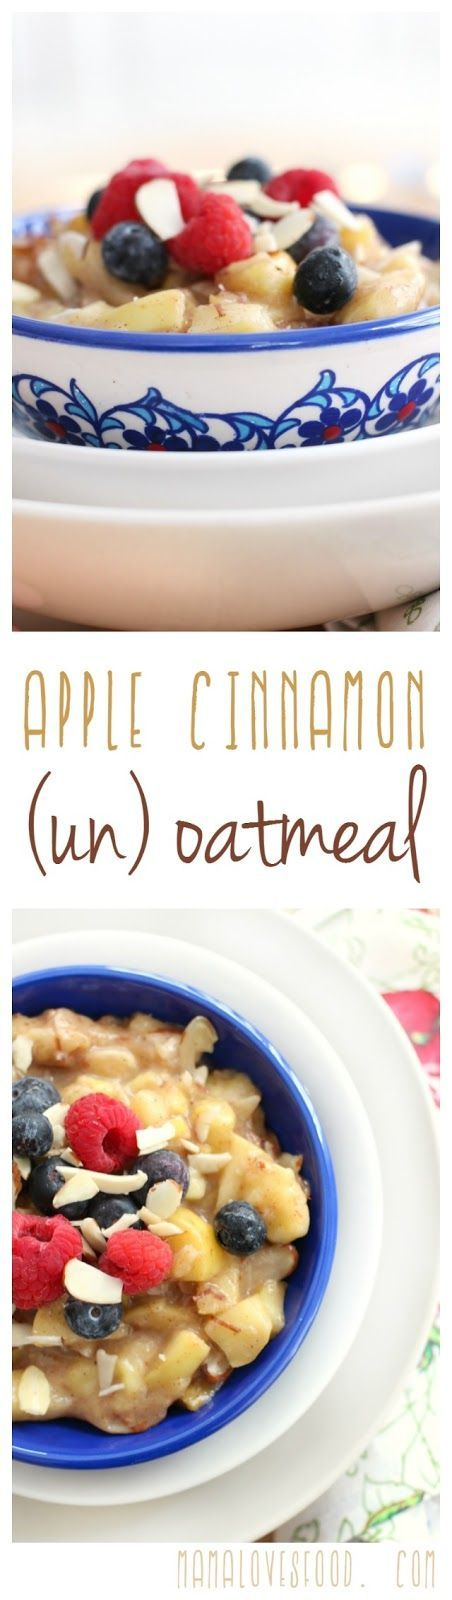 I think I might try this breakfast recipe tomorrow, it sounds super yummy and it is paleo! Apple (un) Oatmeal,